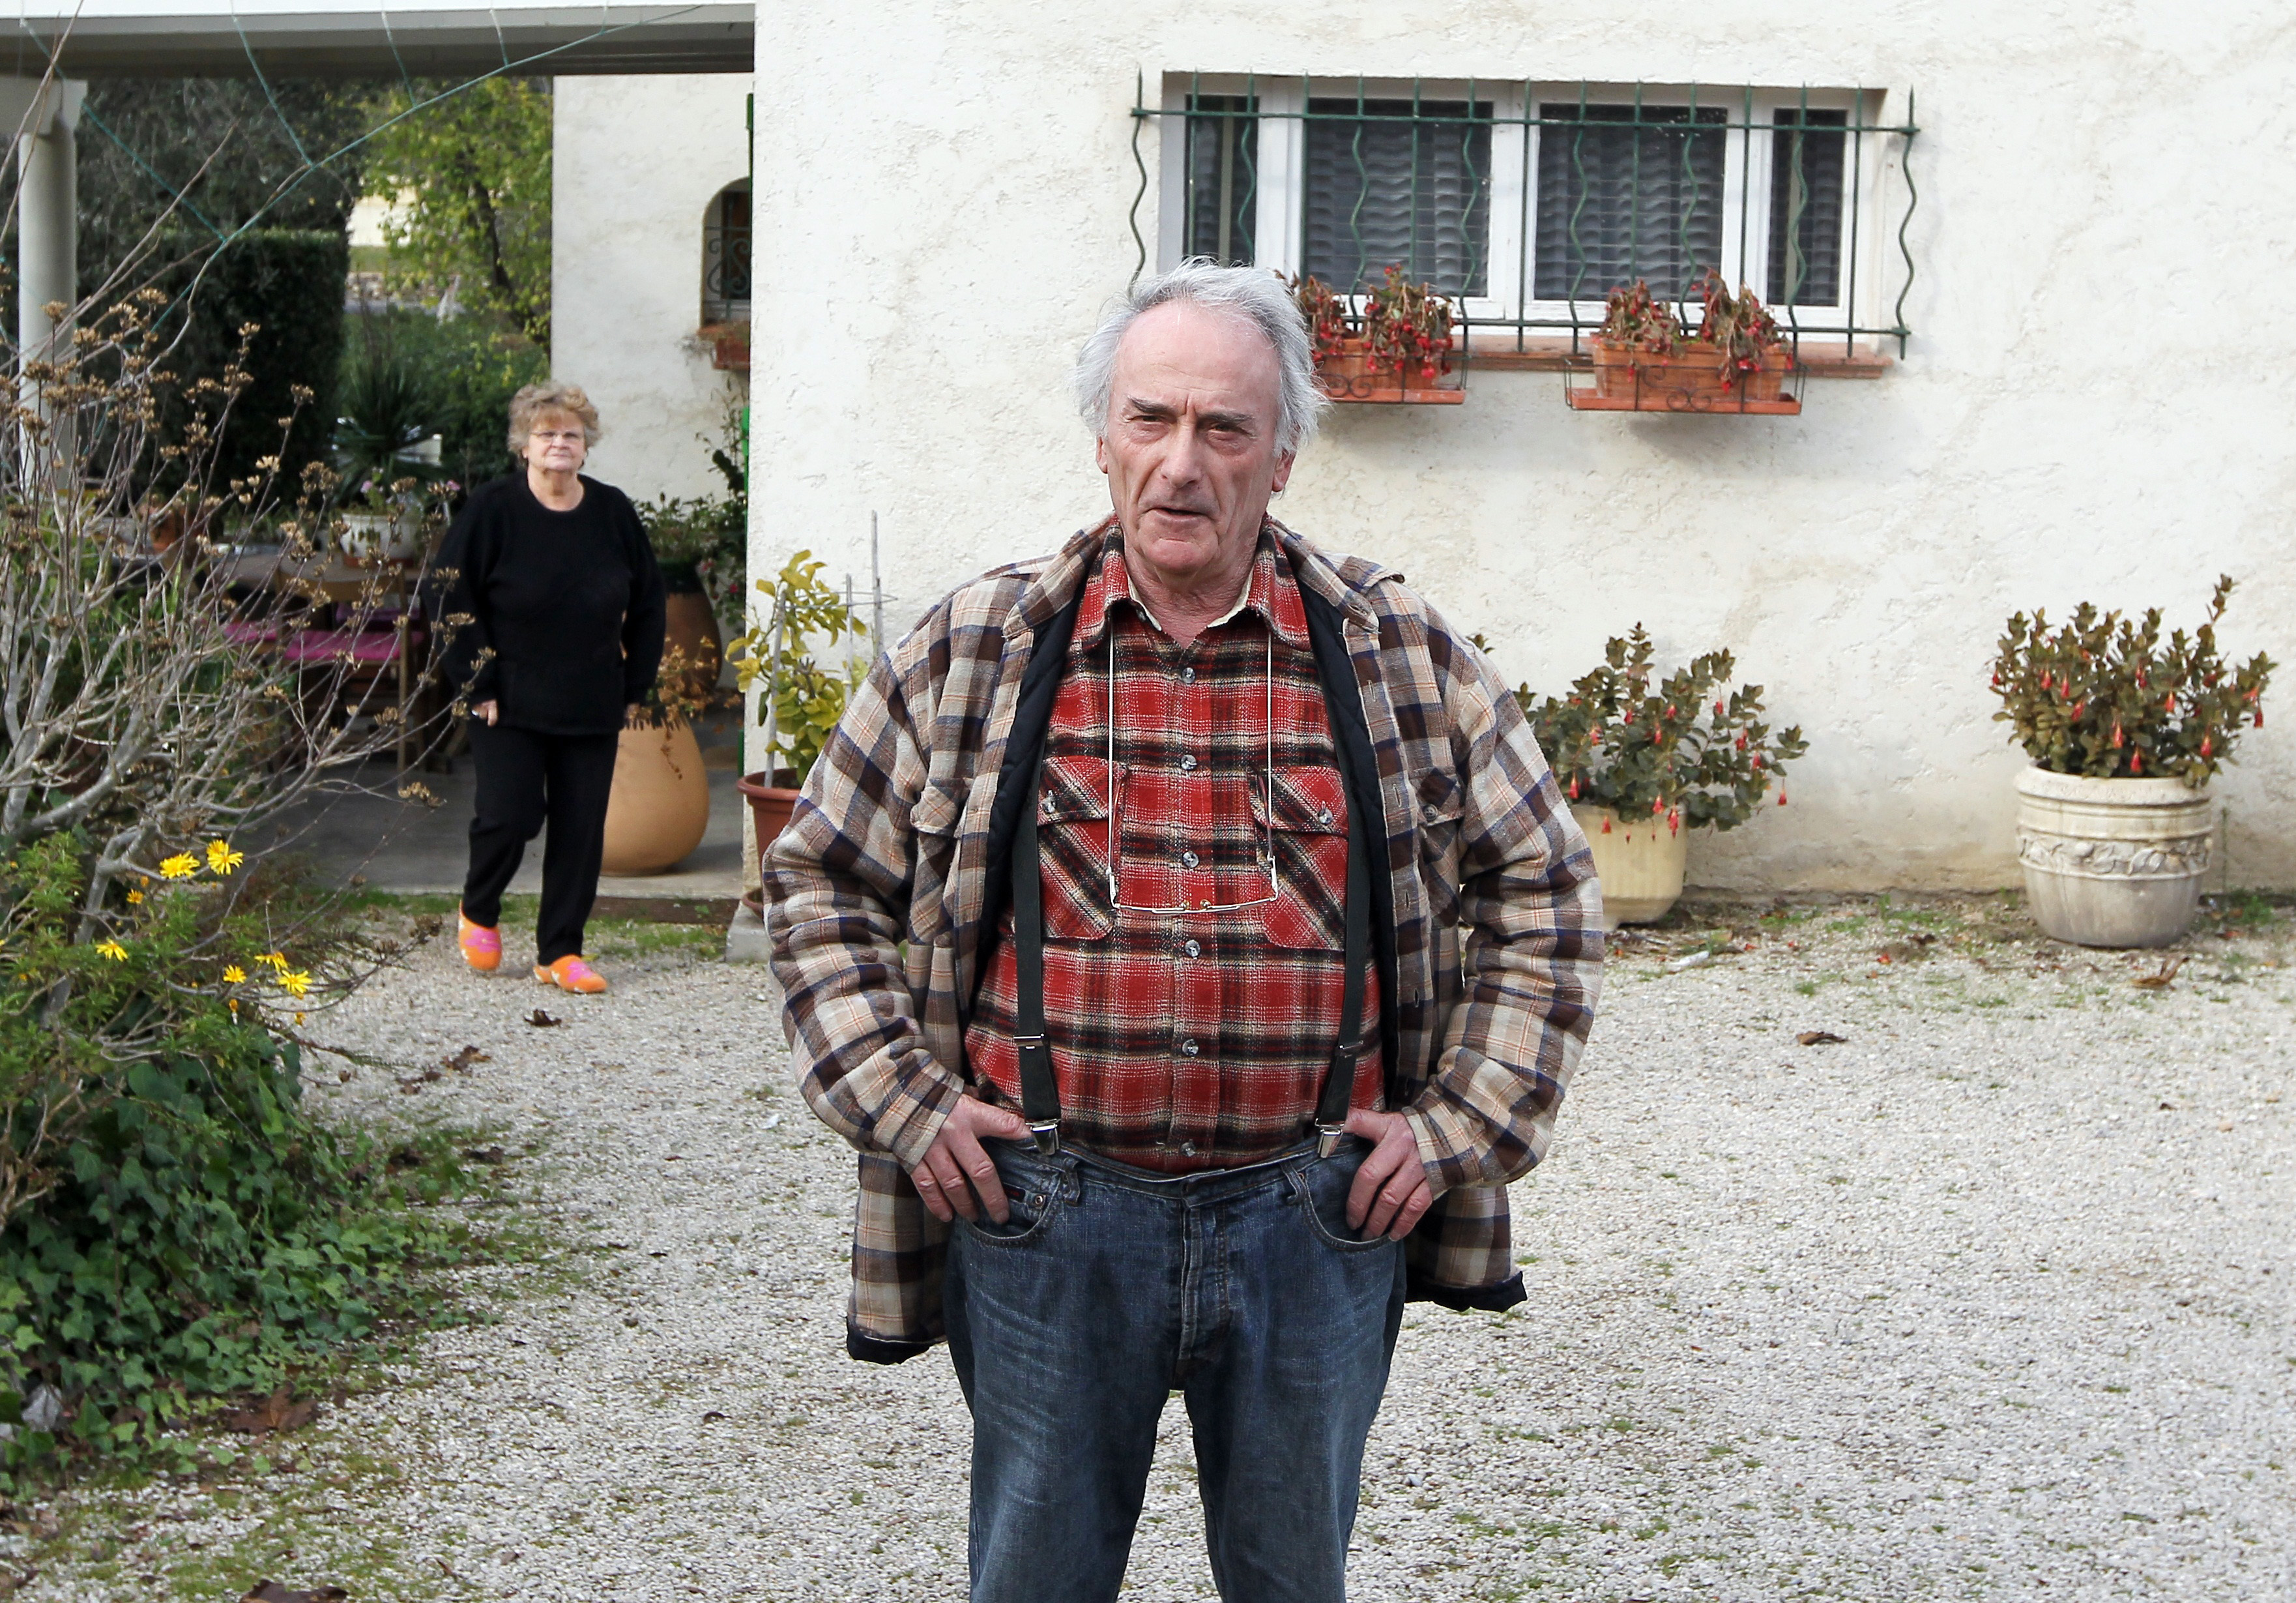 Retired electrician Pierre Le Guennec harbored a collection of 271 works by Pablo Picasso, the French newspaper Liberation reported today. Picasso's heir, Claude Picasso, who filled a complaint, dismissed Le Guennec's claim that he could have received the paintings as gifts, telling Liberation that his father would not have given such a quantity of works to anyone, after Le Guennec told he had been given the works as presents, either by Picasso's wife or from the artist himself. AFP PHOTO VALERY HACHE (Photo credit should read )